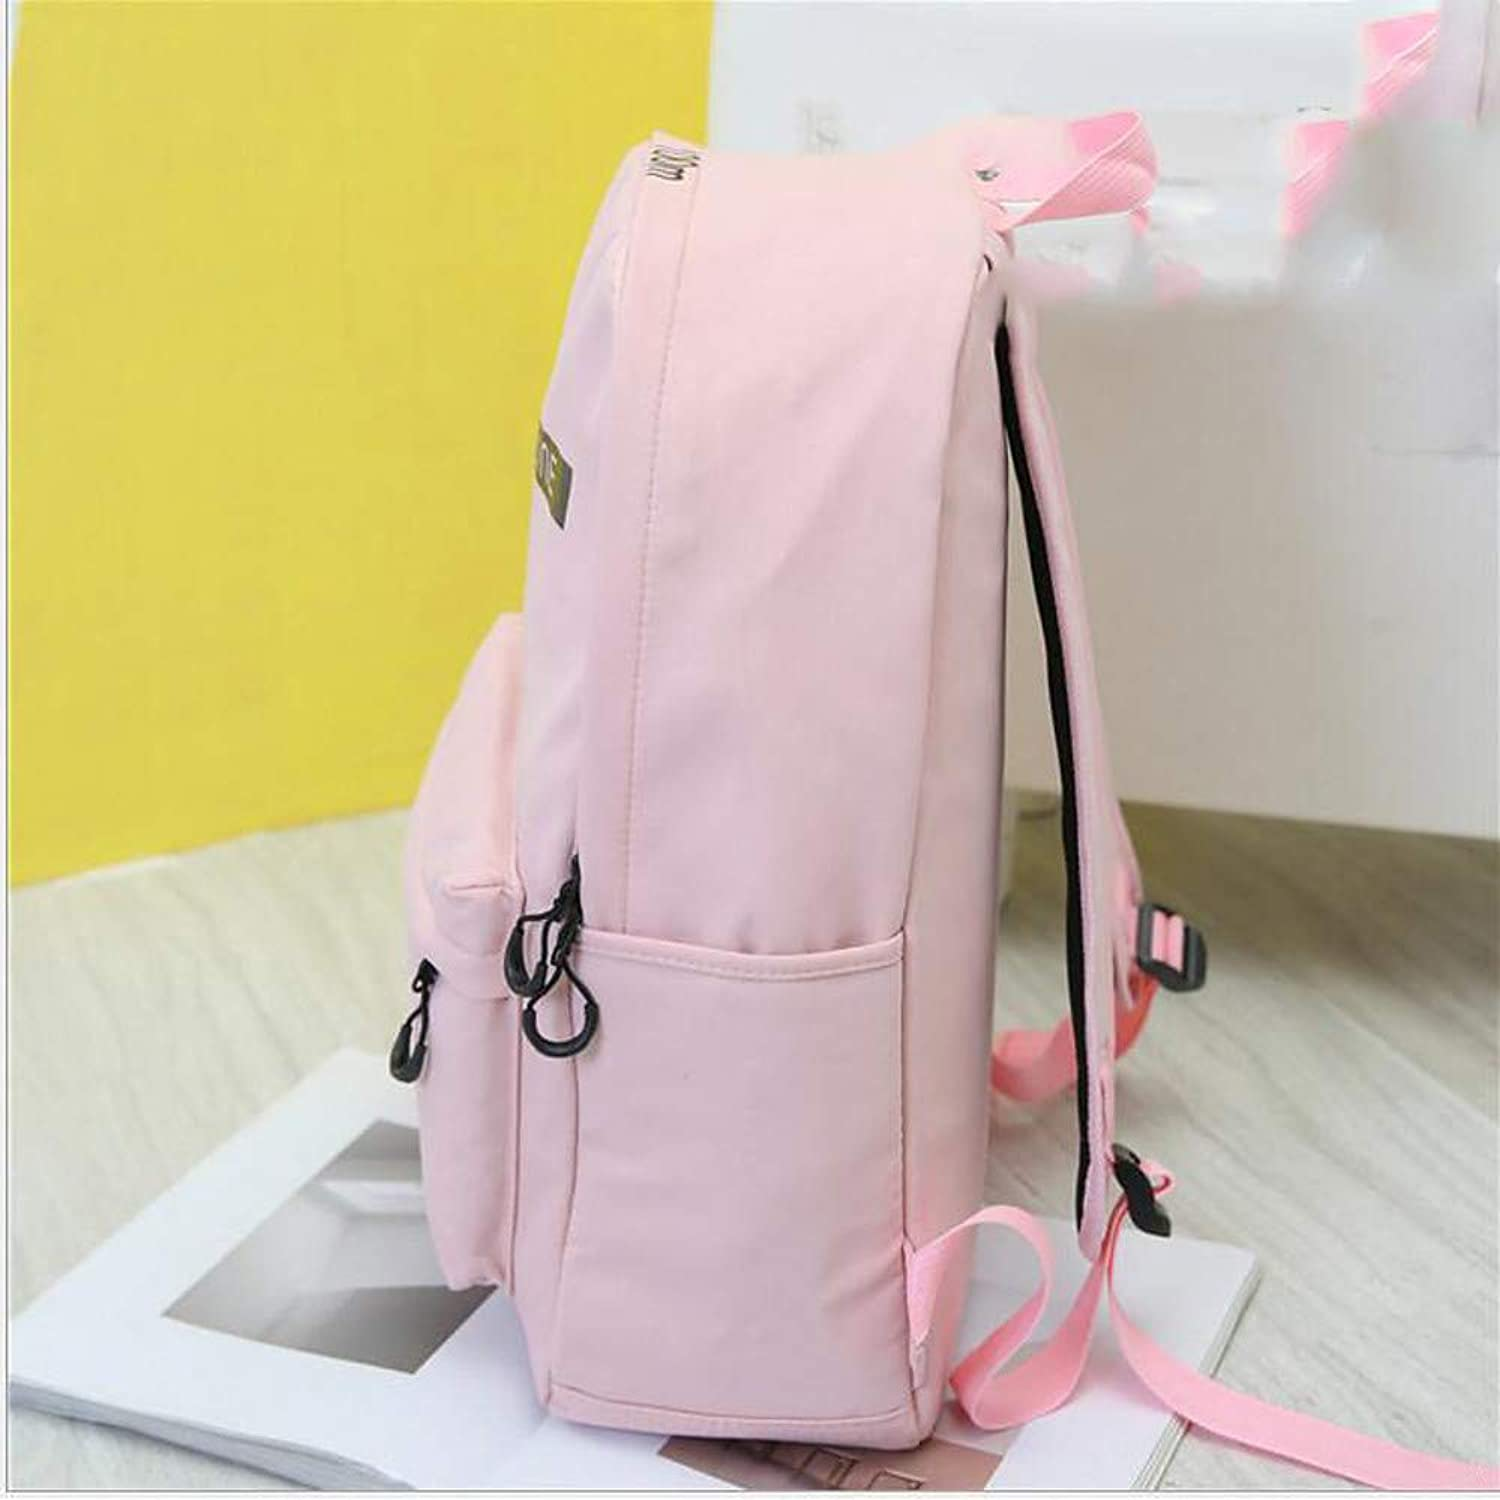 Novopus backpack:Women's Bags Nylon School Bag Zipper Black Pink Khaki